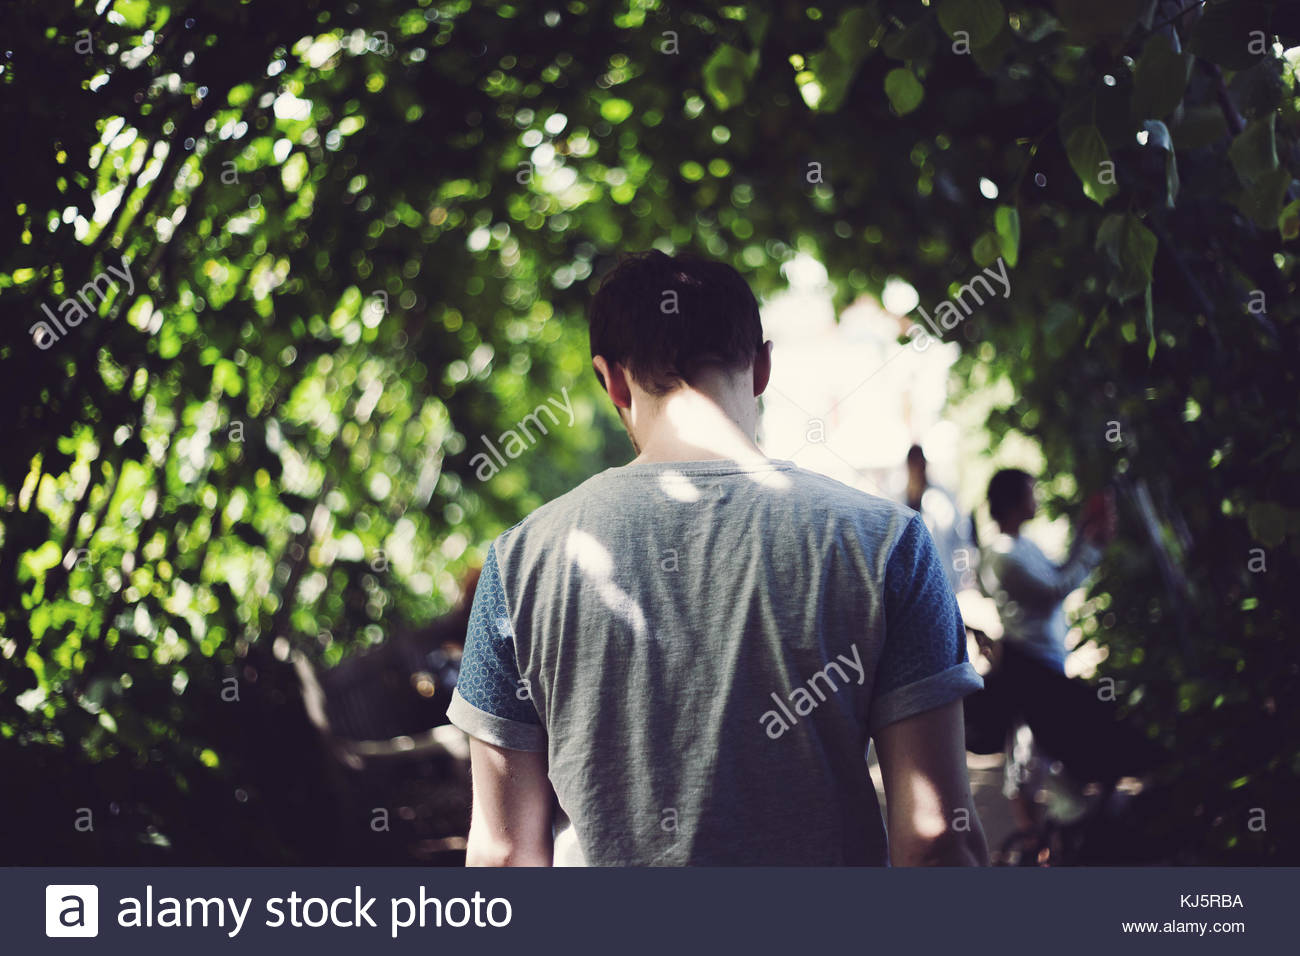 man dappled with light and shadow - Stock Image